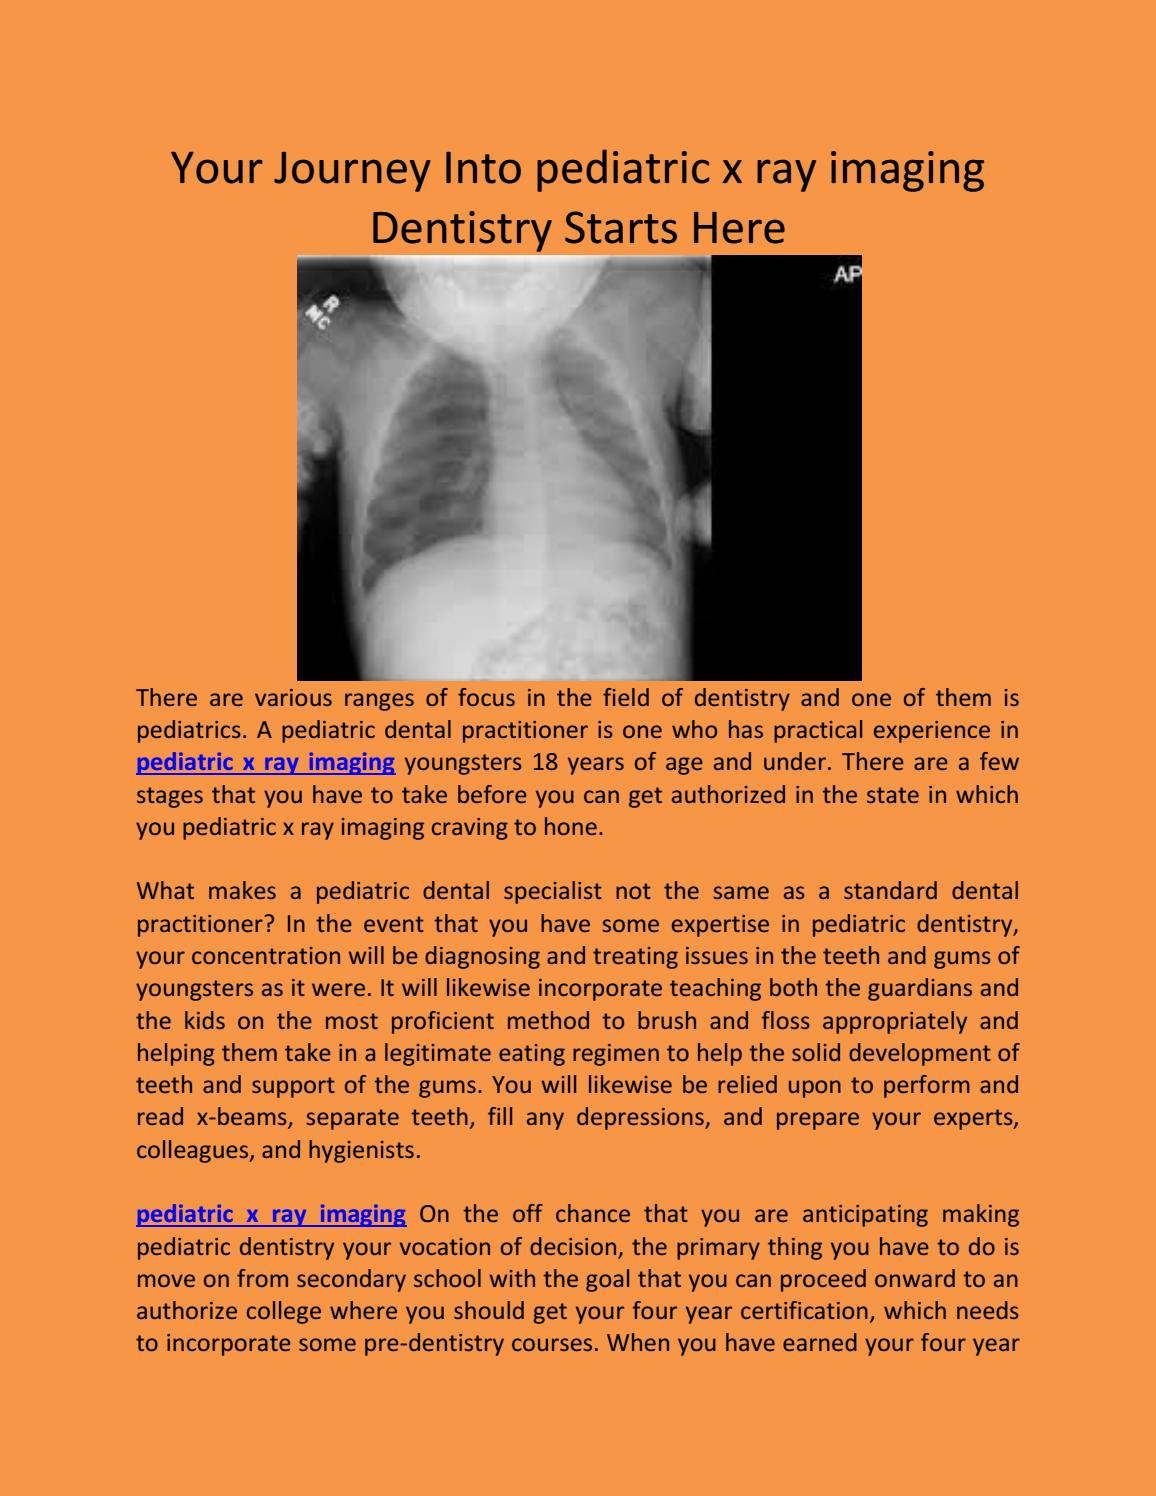 Your Journey Into Pediatric X Ray Imaging Dentistry Starts Here By